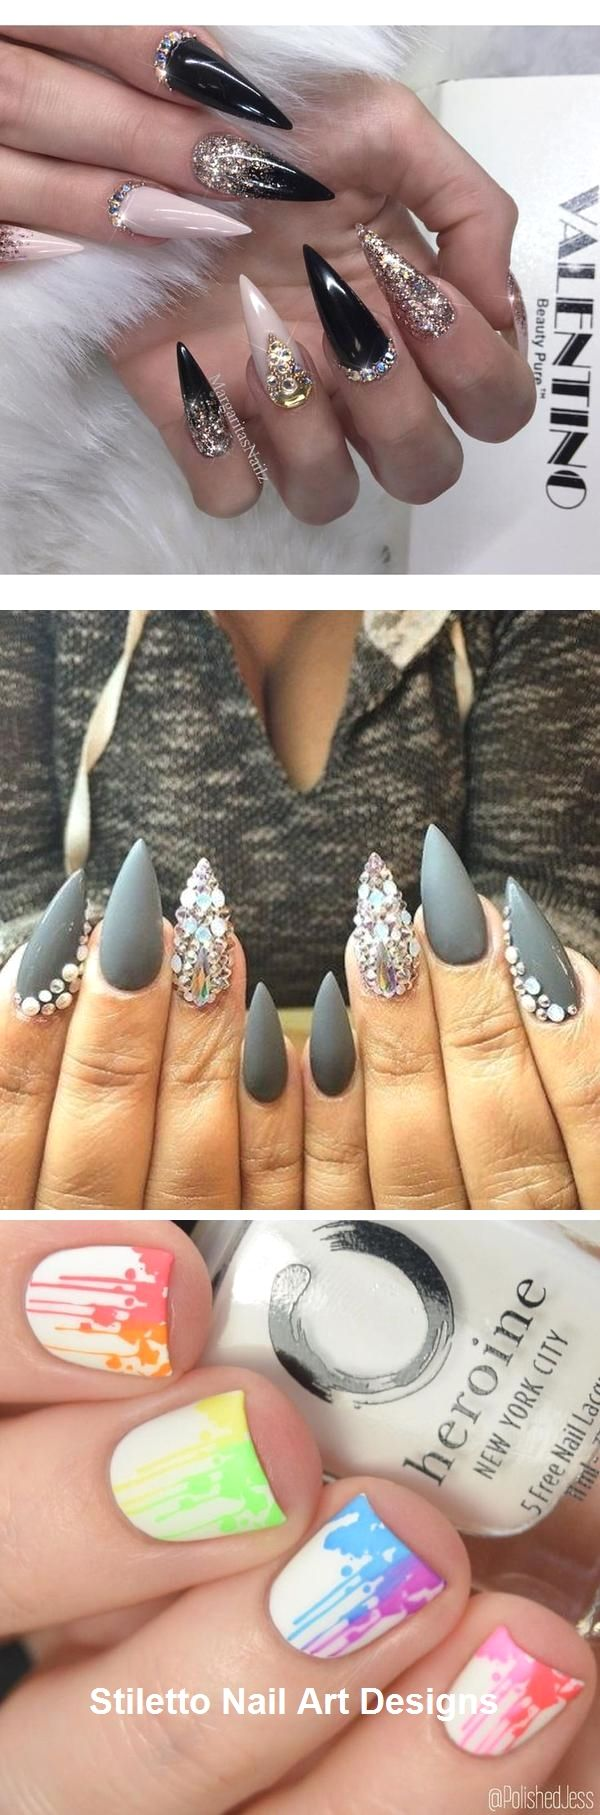 30 Ideen für großartige Stiletto-Nageldesigns #stiletto – Nägel